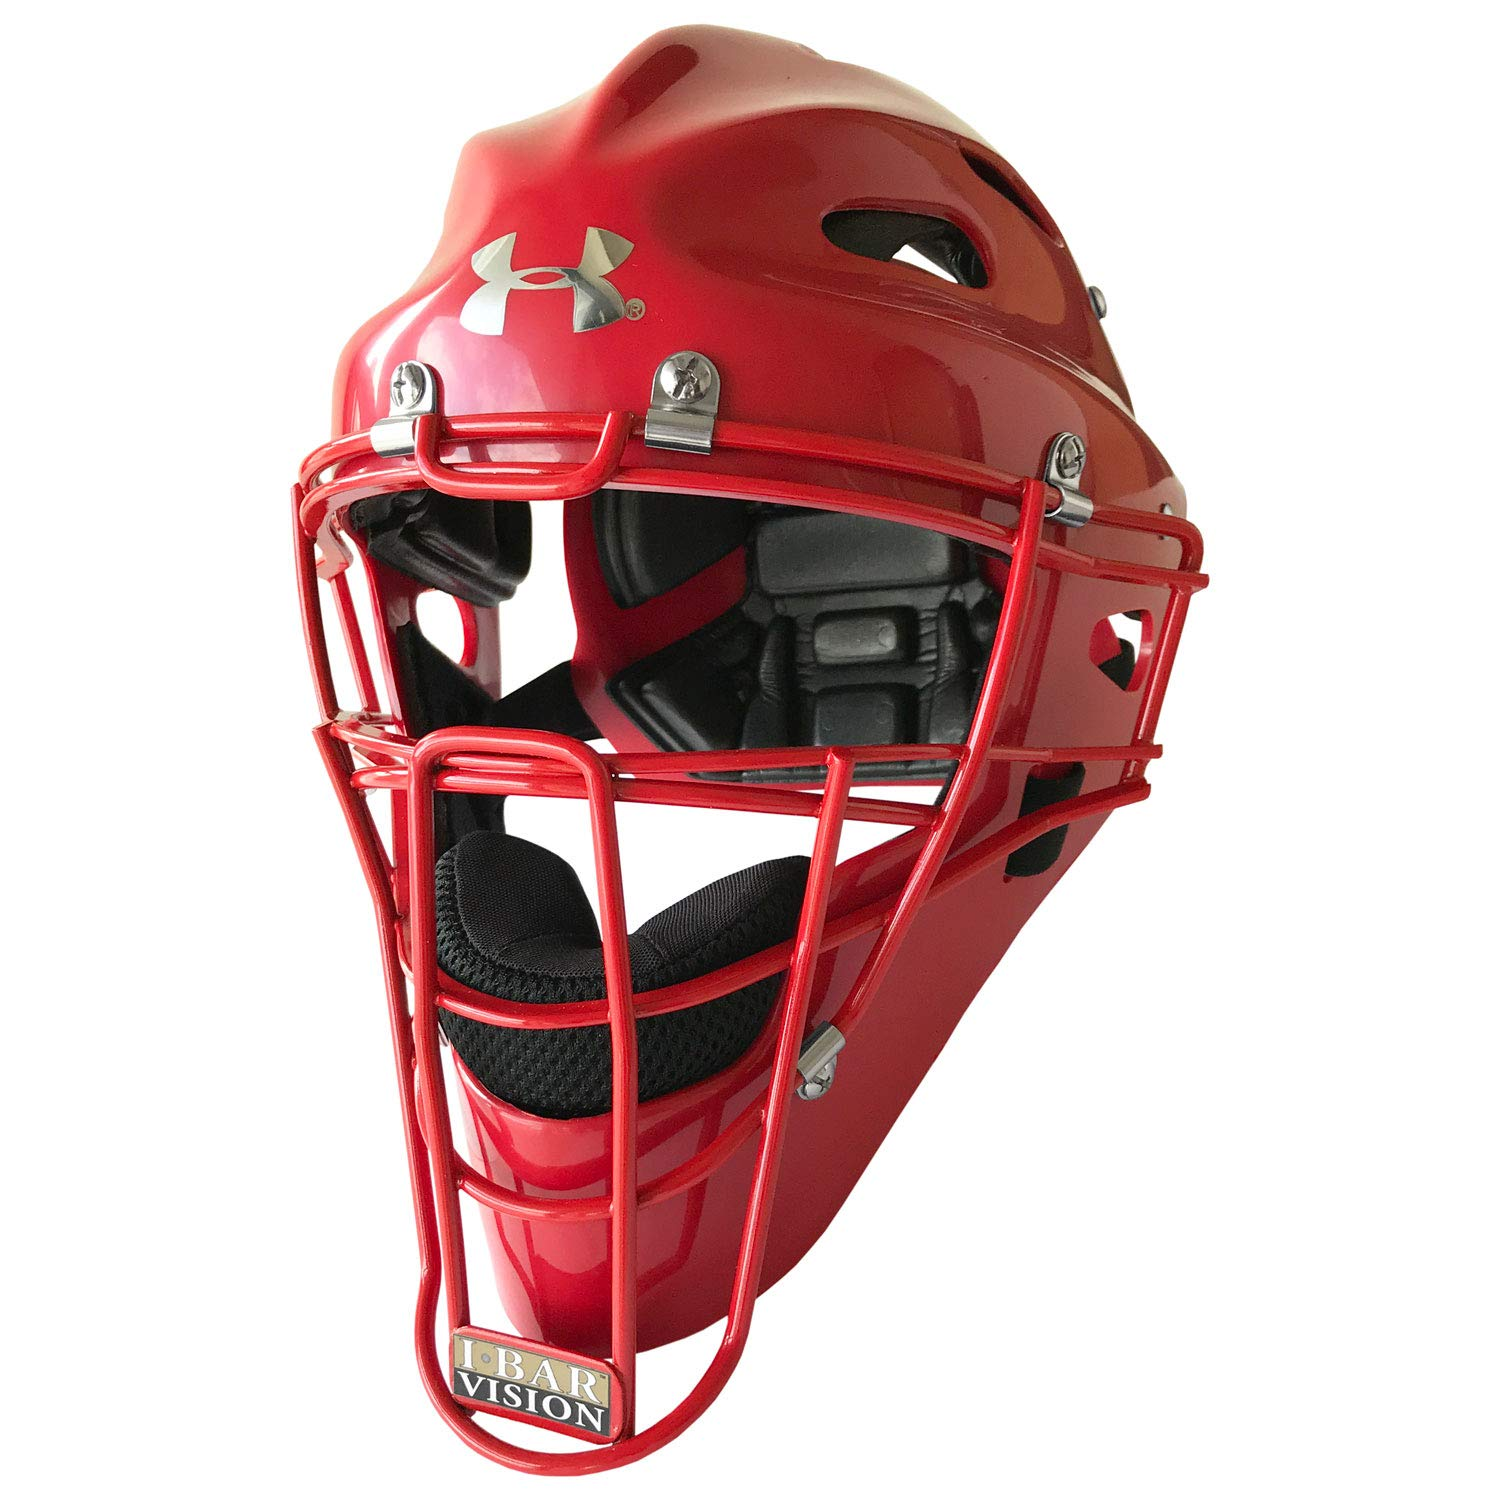 Under Armour Youth Solid Baseball/Softball Catcher's Helmet by Under Armour